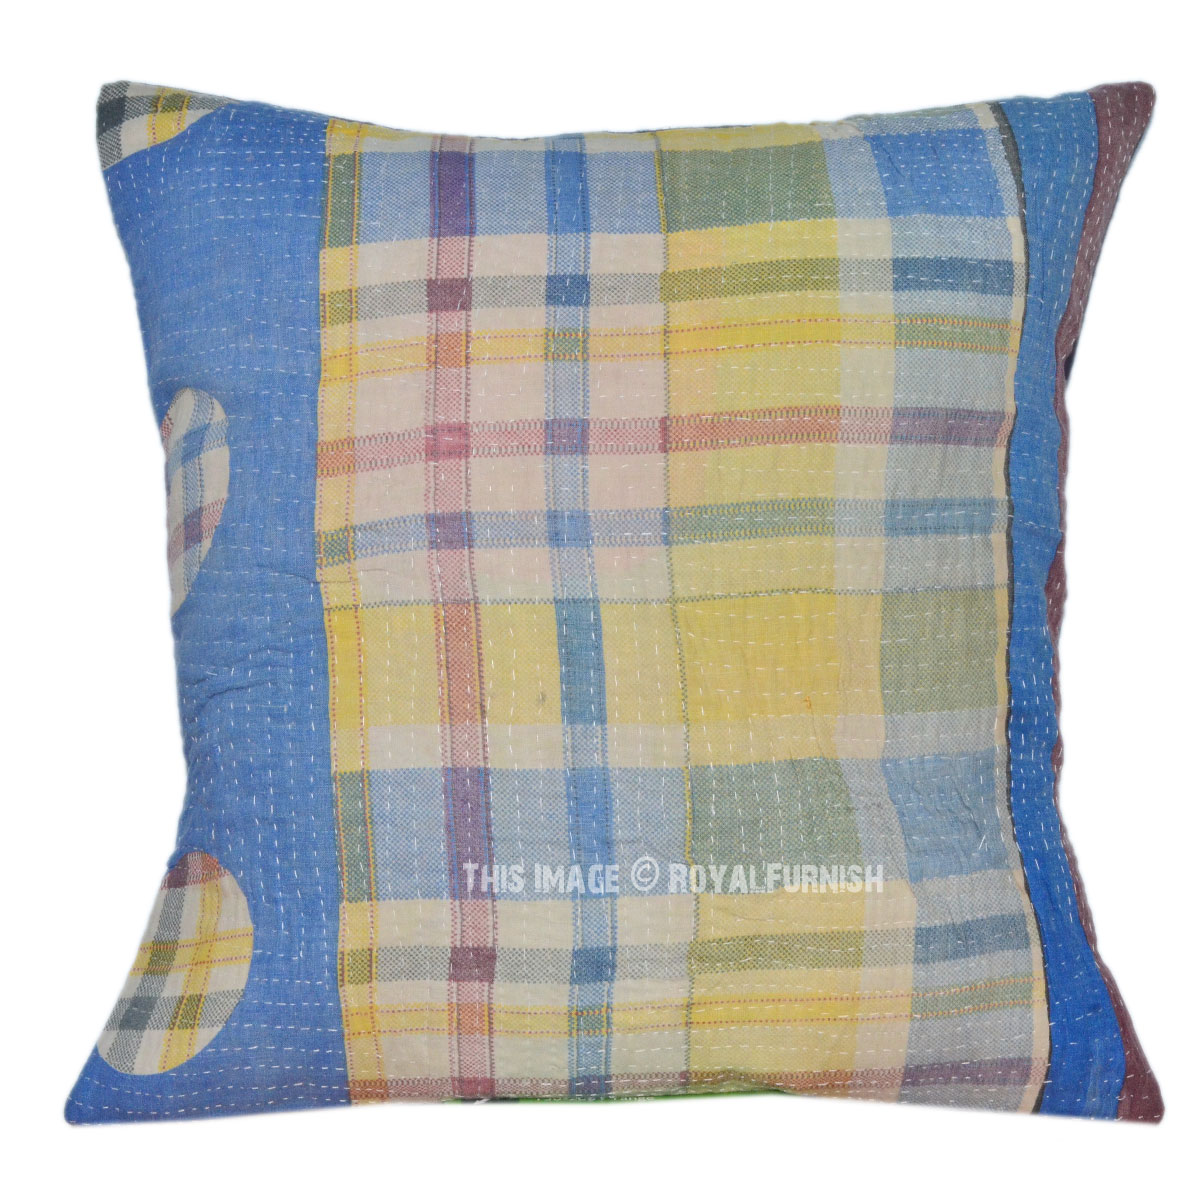 Throw Pillow Cover Fabric : 16